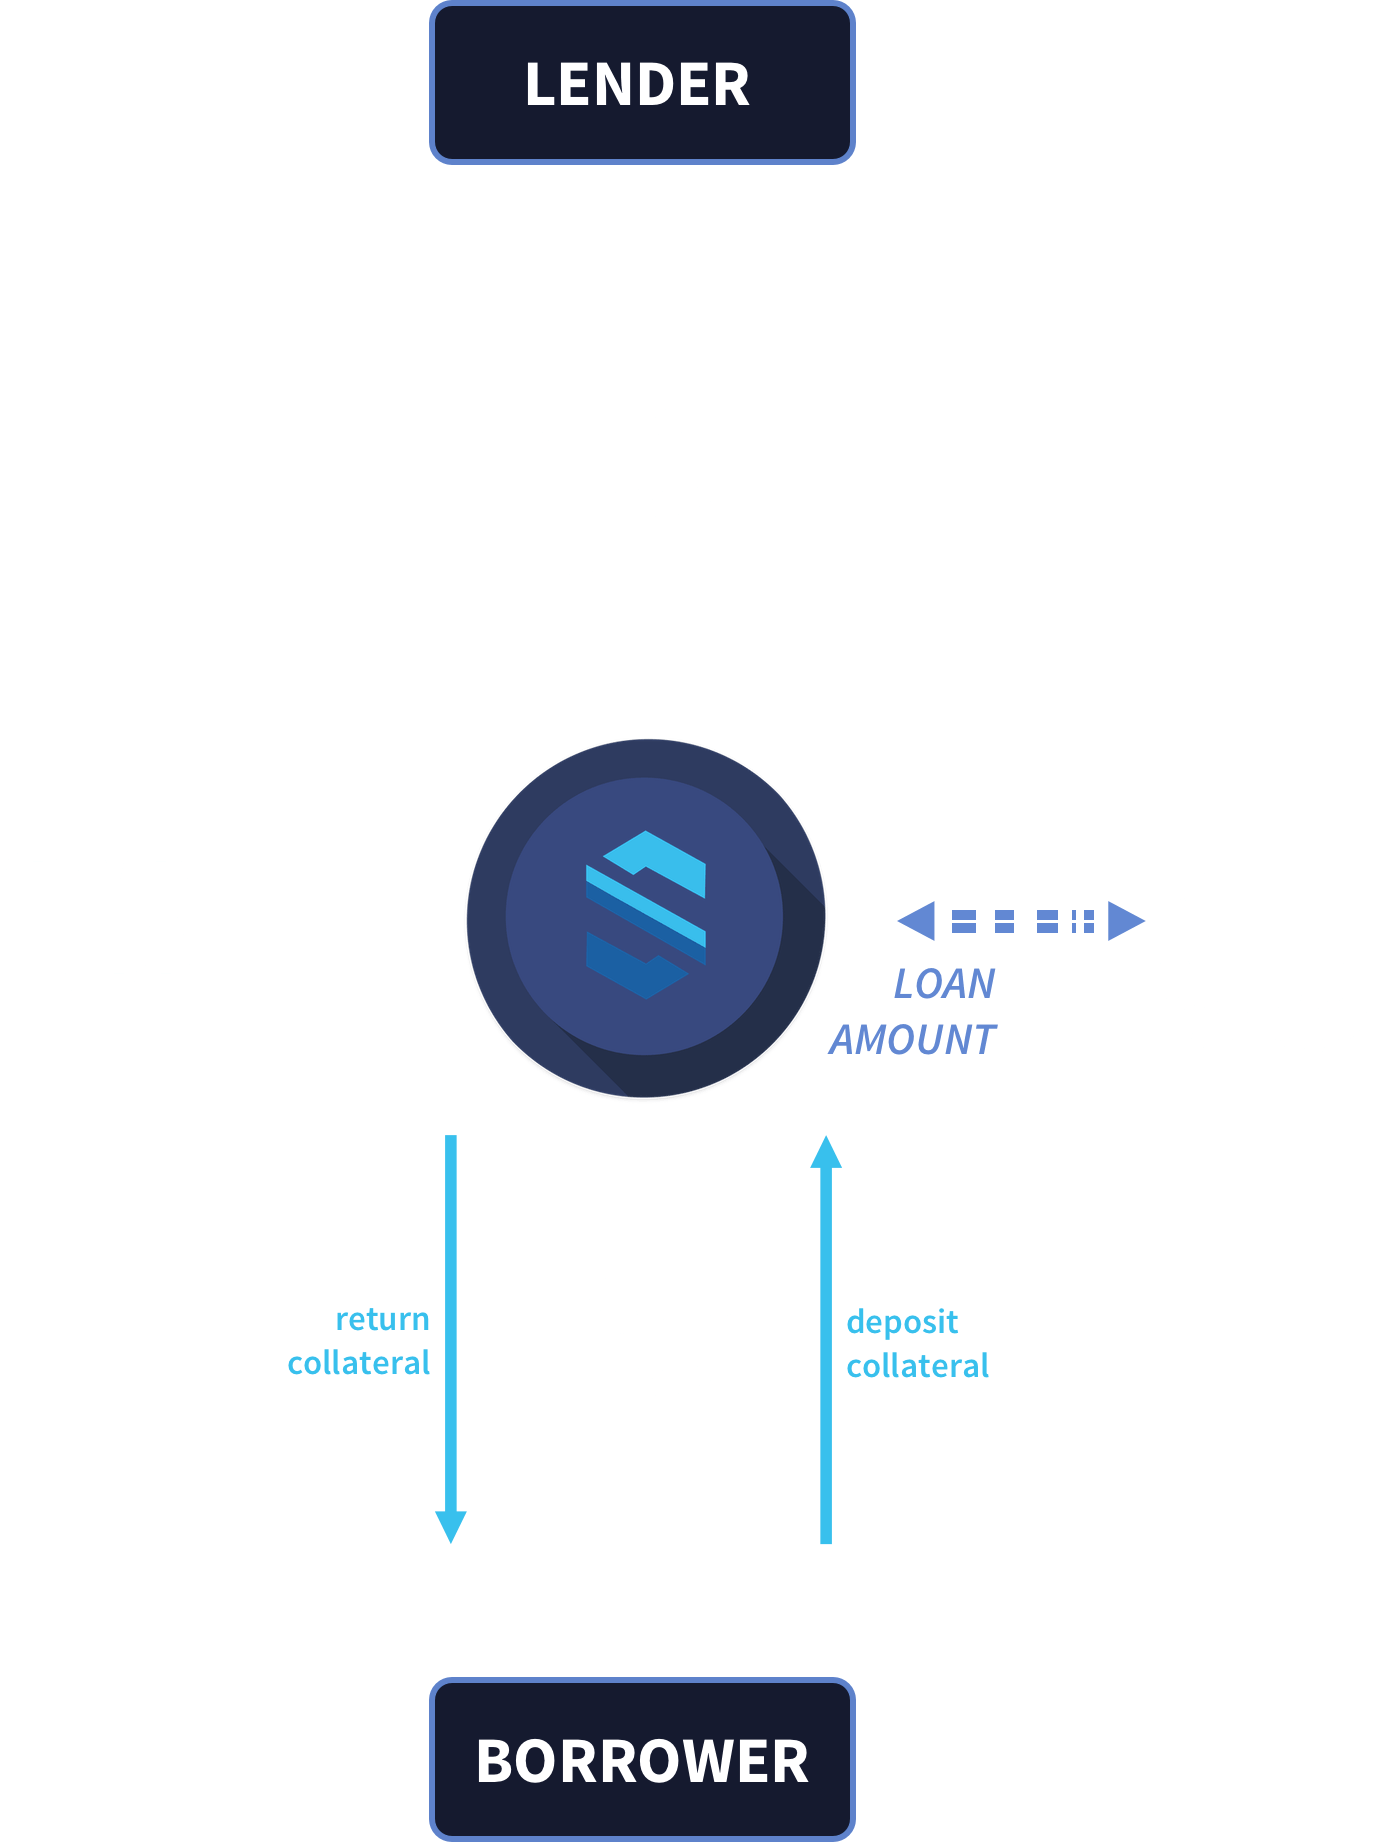 Loan Contract Flowchart